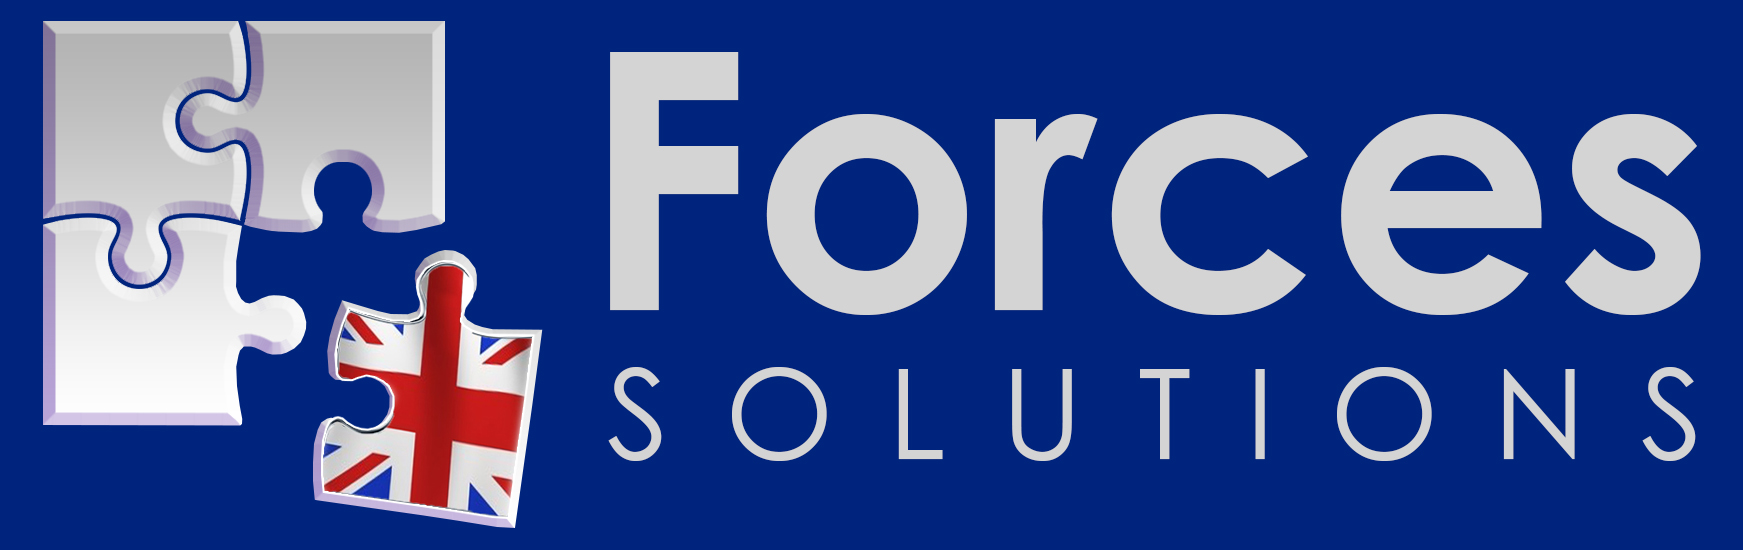 Read Forces Solutions Reviews